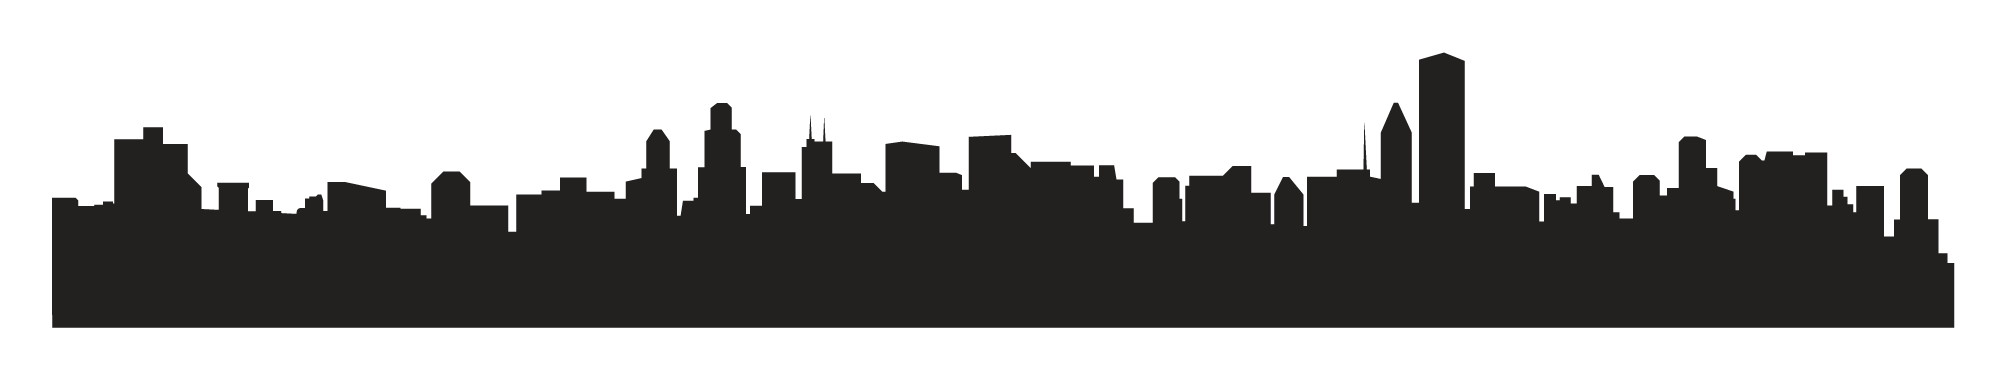 City Skyline Graphic - Cliparts.co